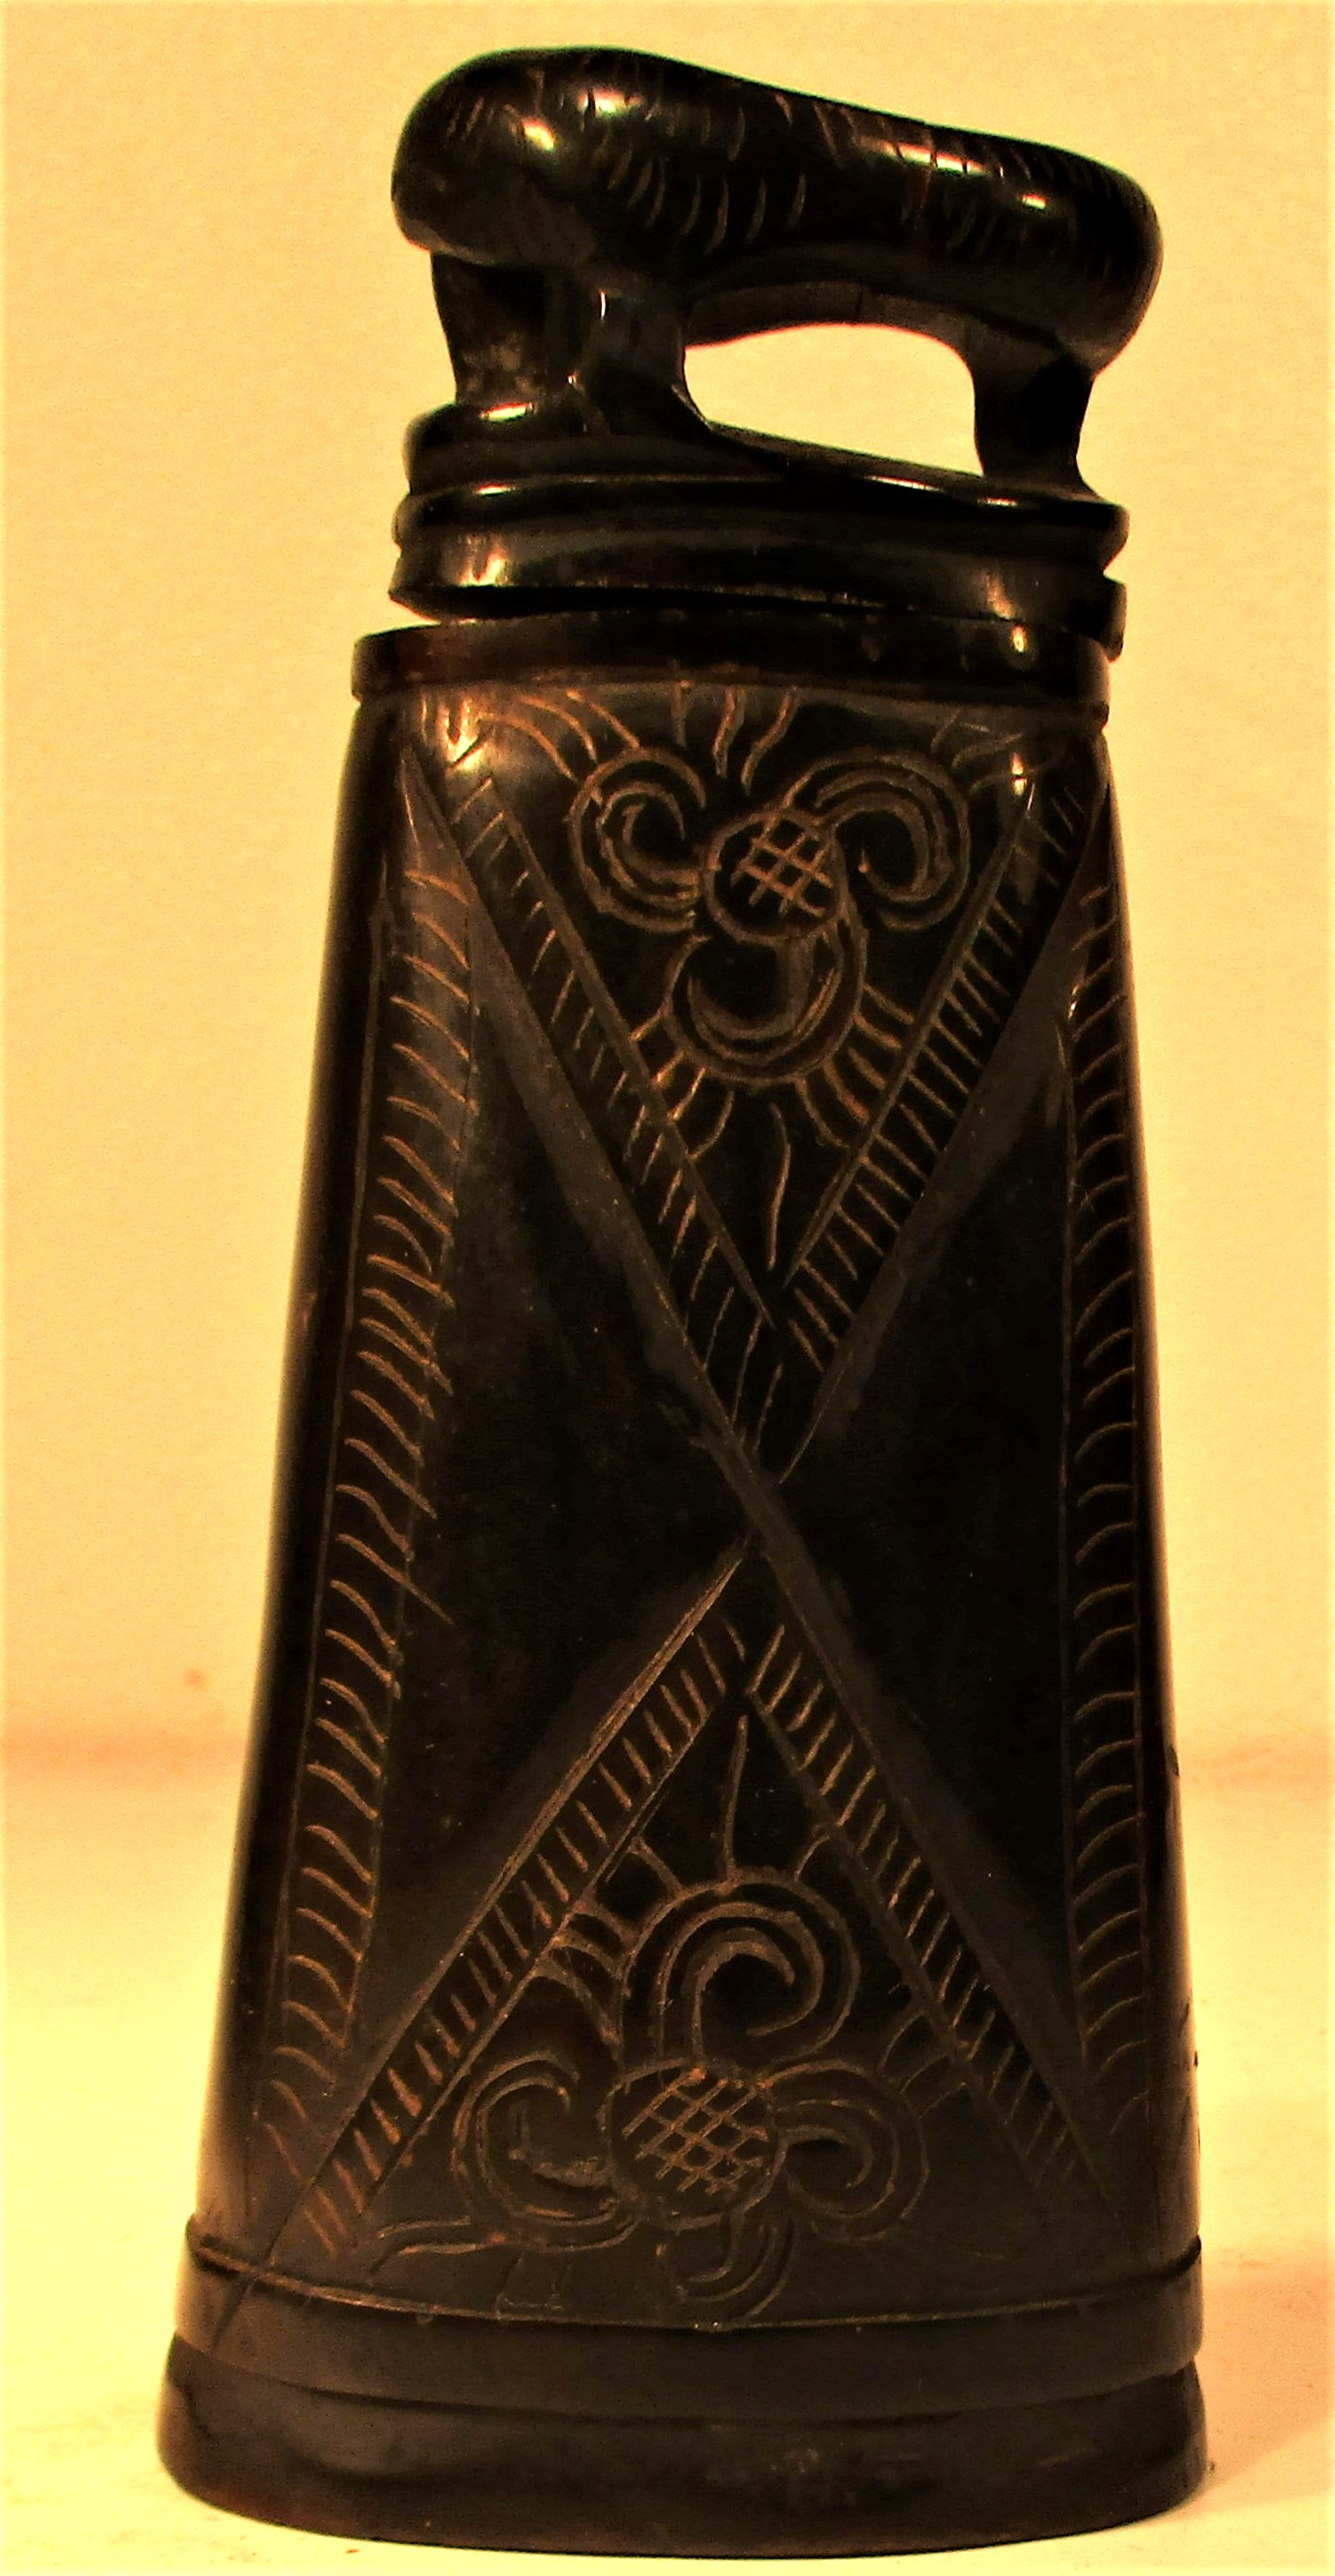 Horn ignition powder container, Torba Batak. Made from water buffalo horn.15 x 7cm. Late 20th c.